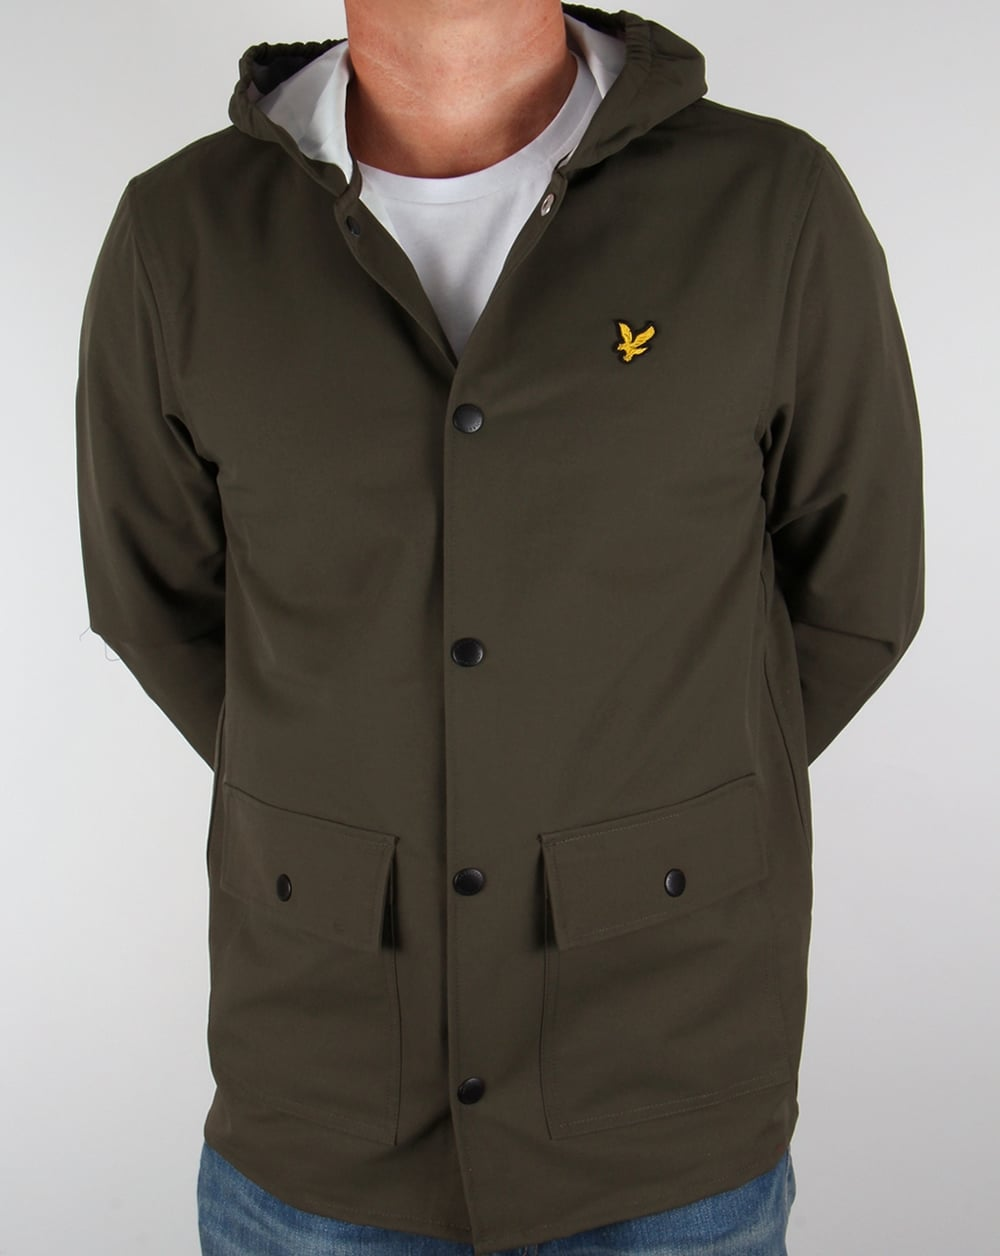 lyle and scott raincoat dark sage jacket men 39 s green coat. Black Bedroom Furniture Sets. Home Design Ideas